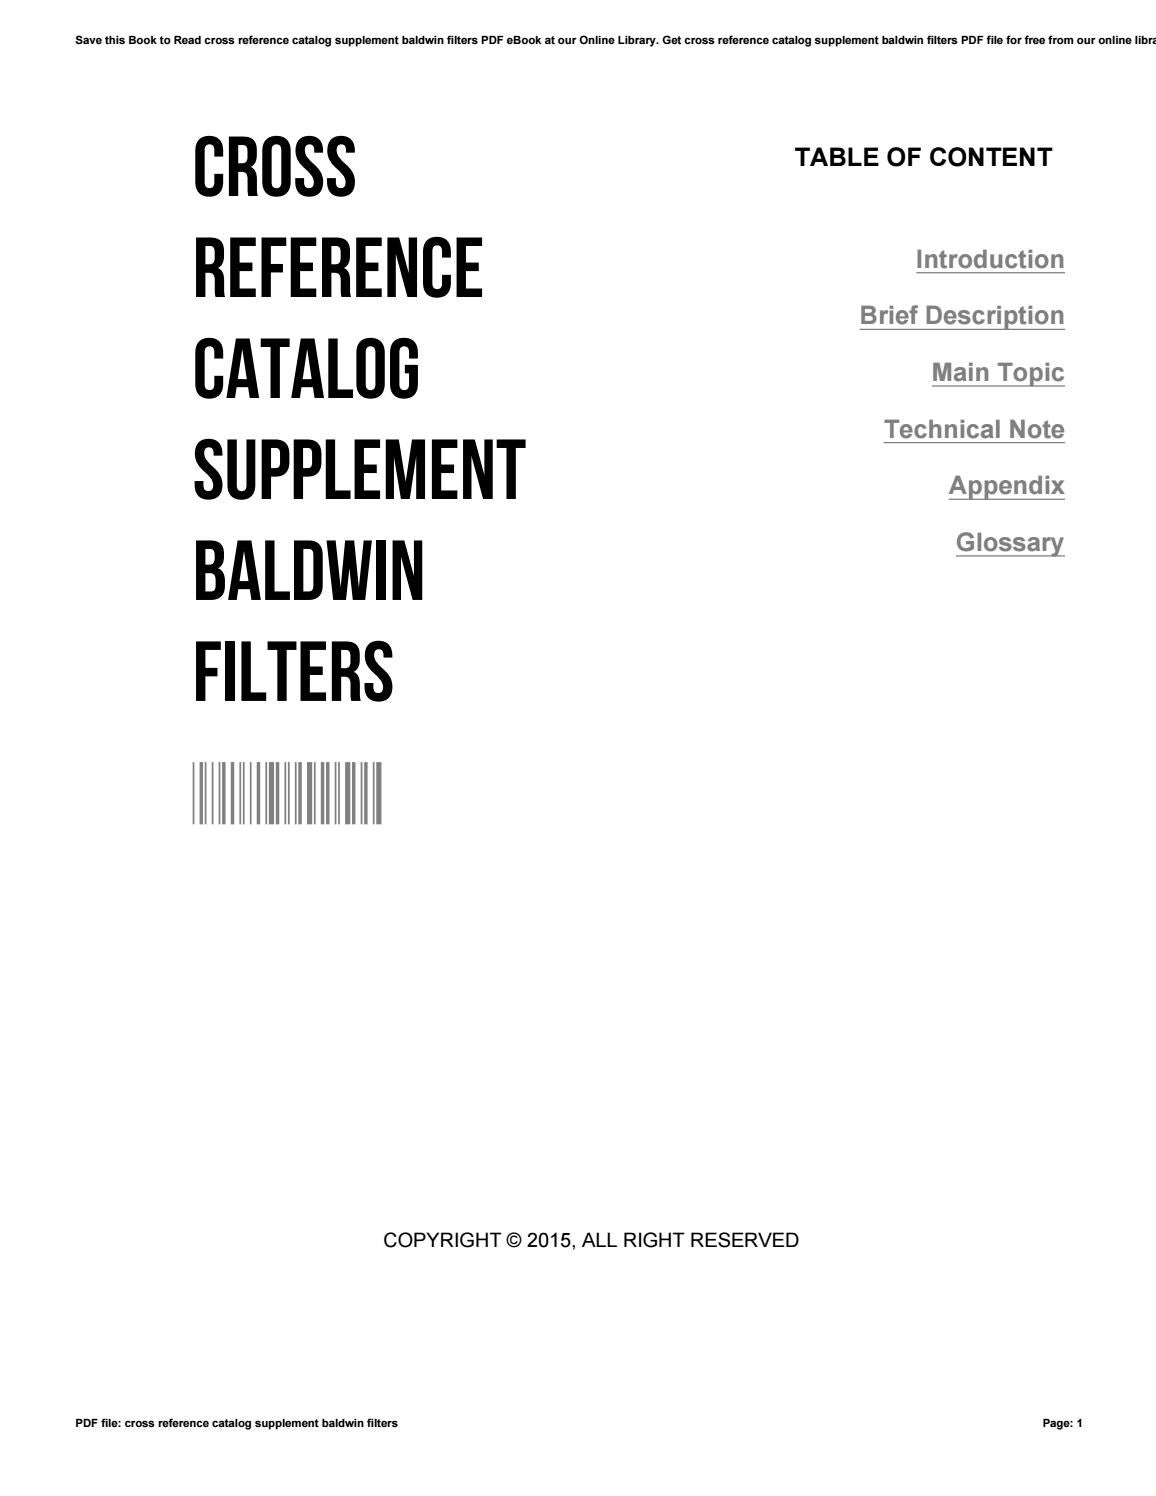 Cross reference catalog supplement baldwin filters by